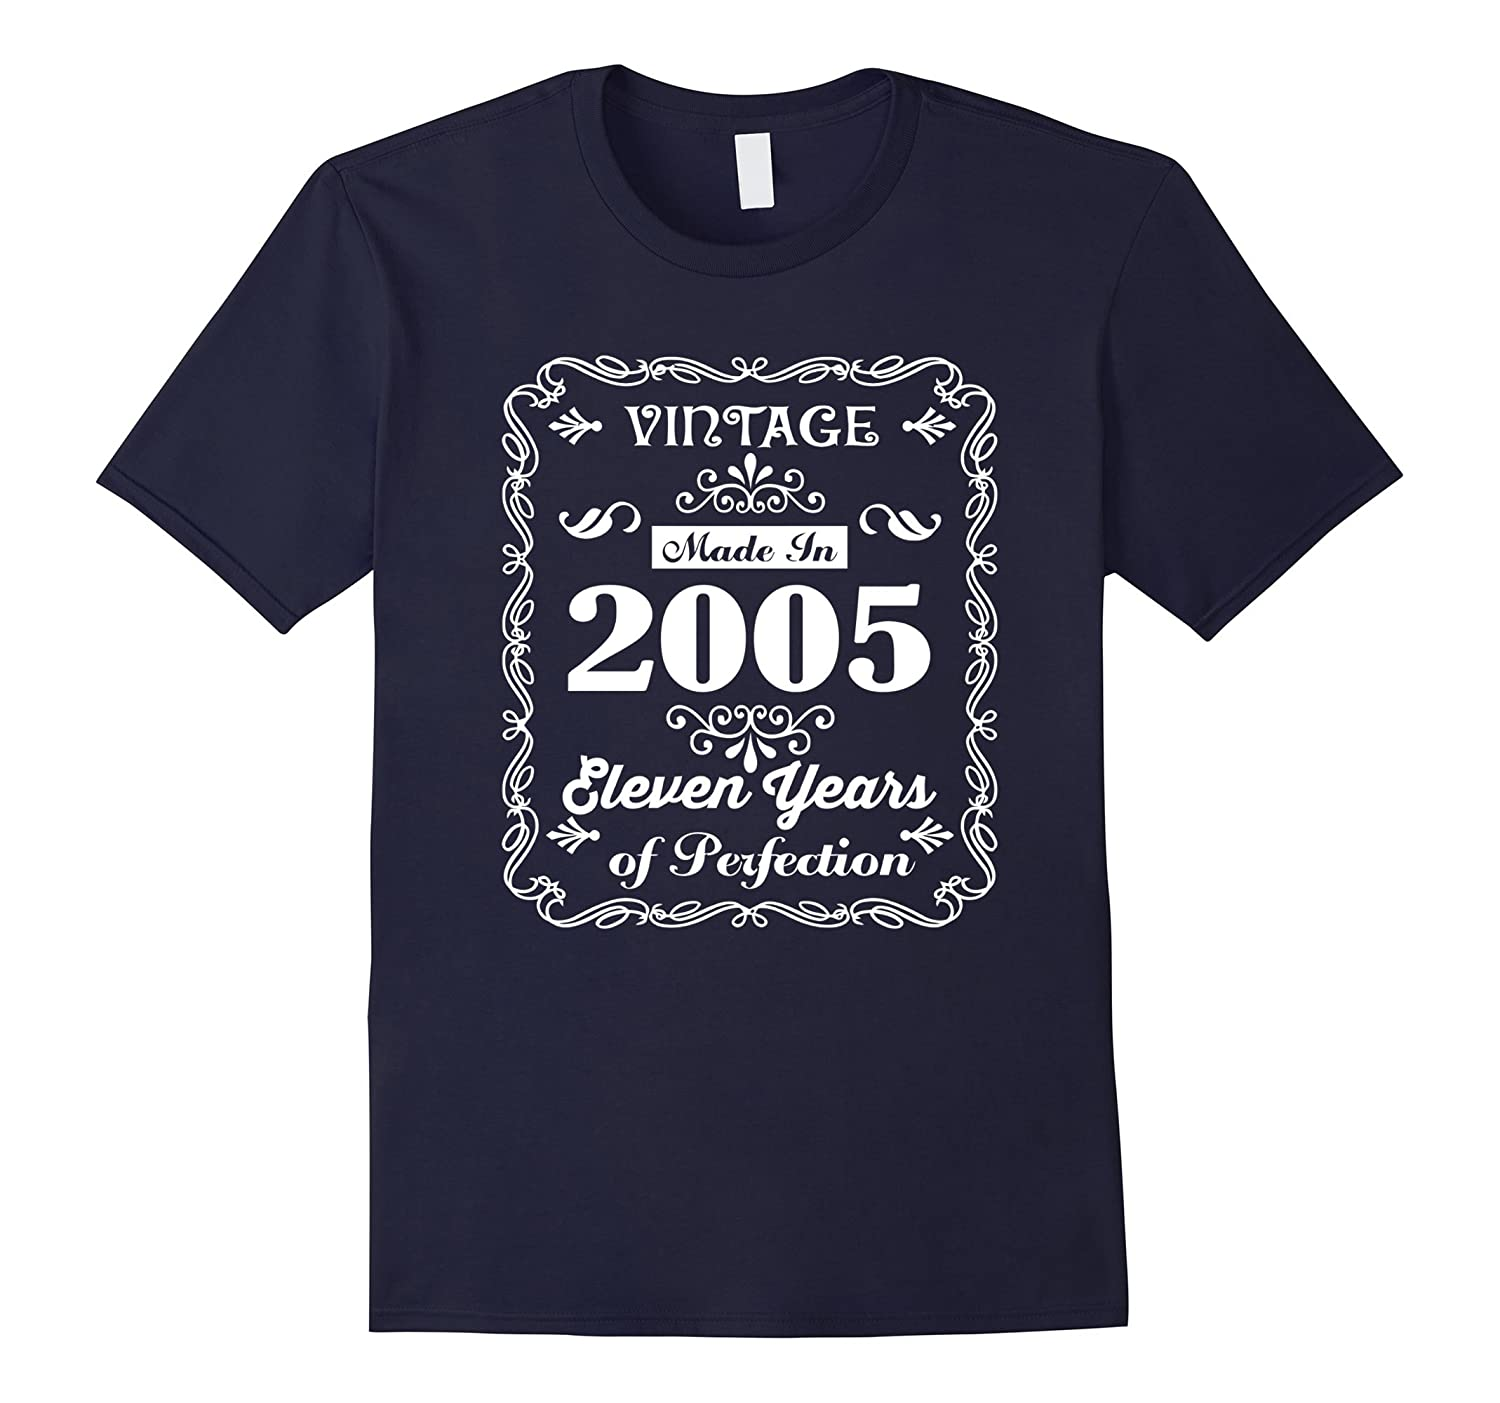 11th birthday Gift Idea 11 Year Old Boy Girl Shirt 2005-Art